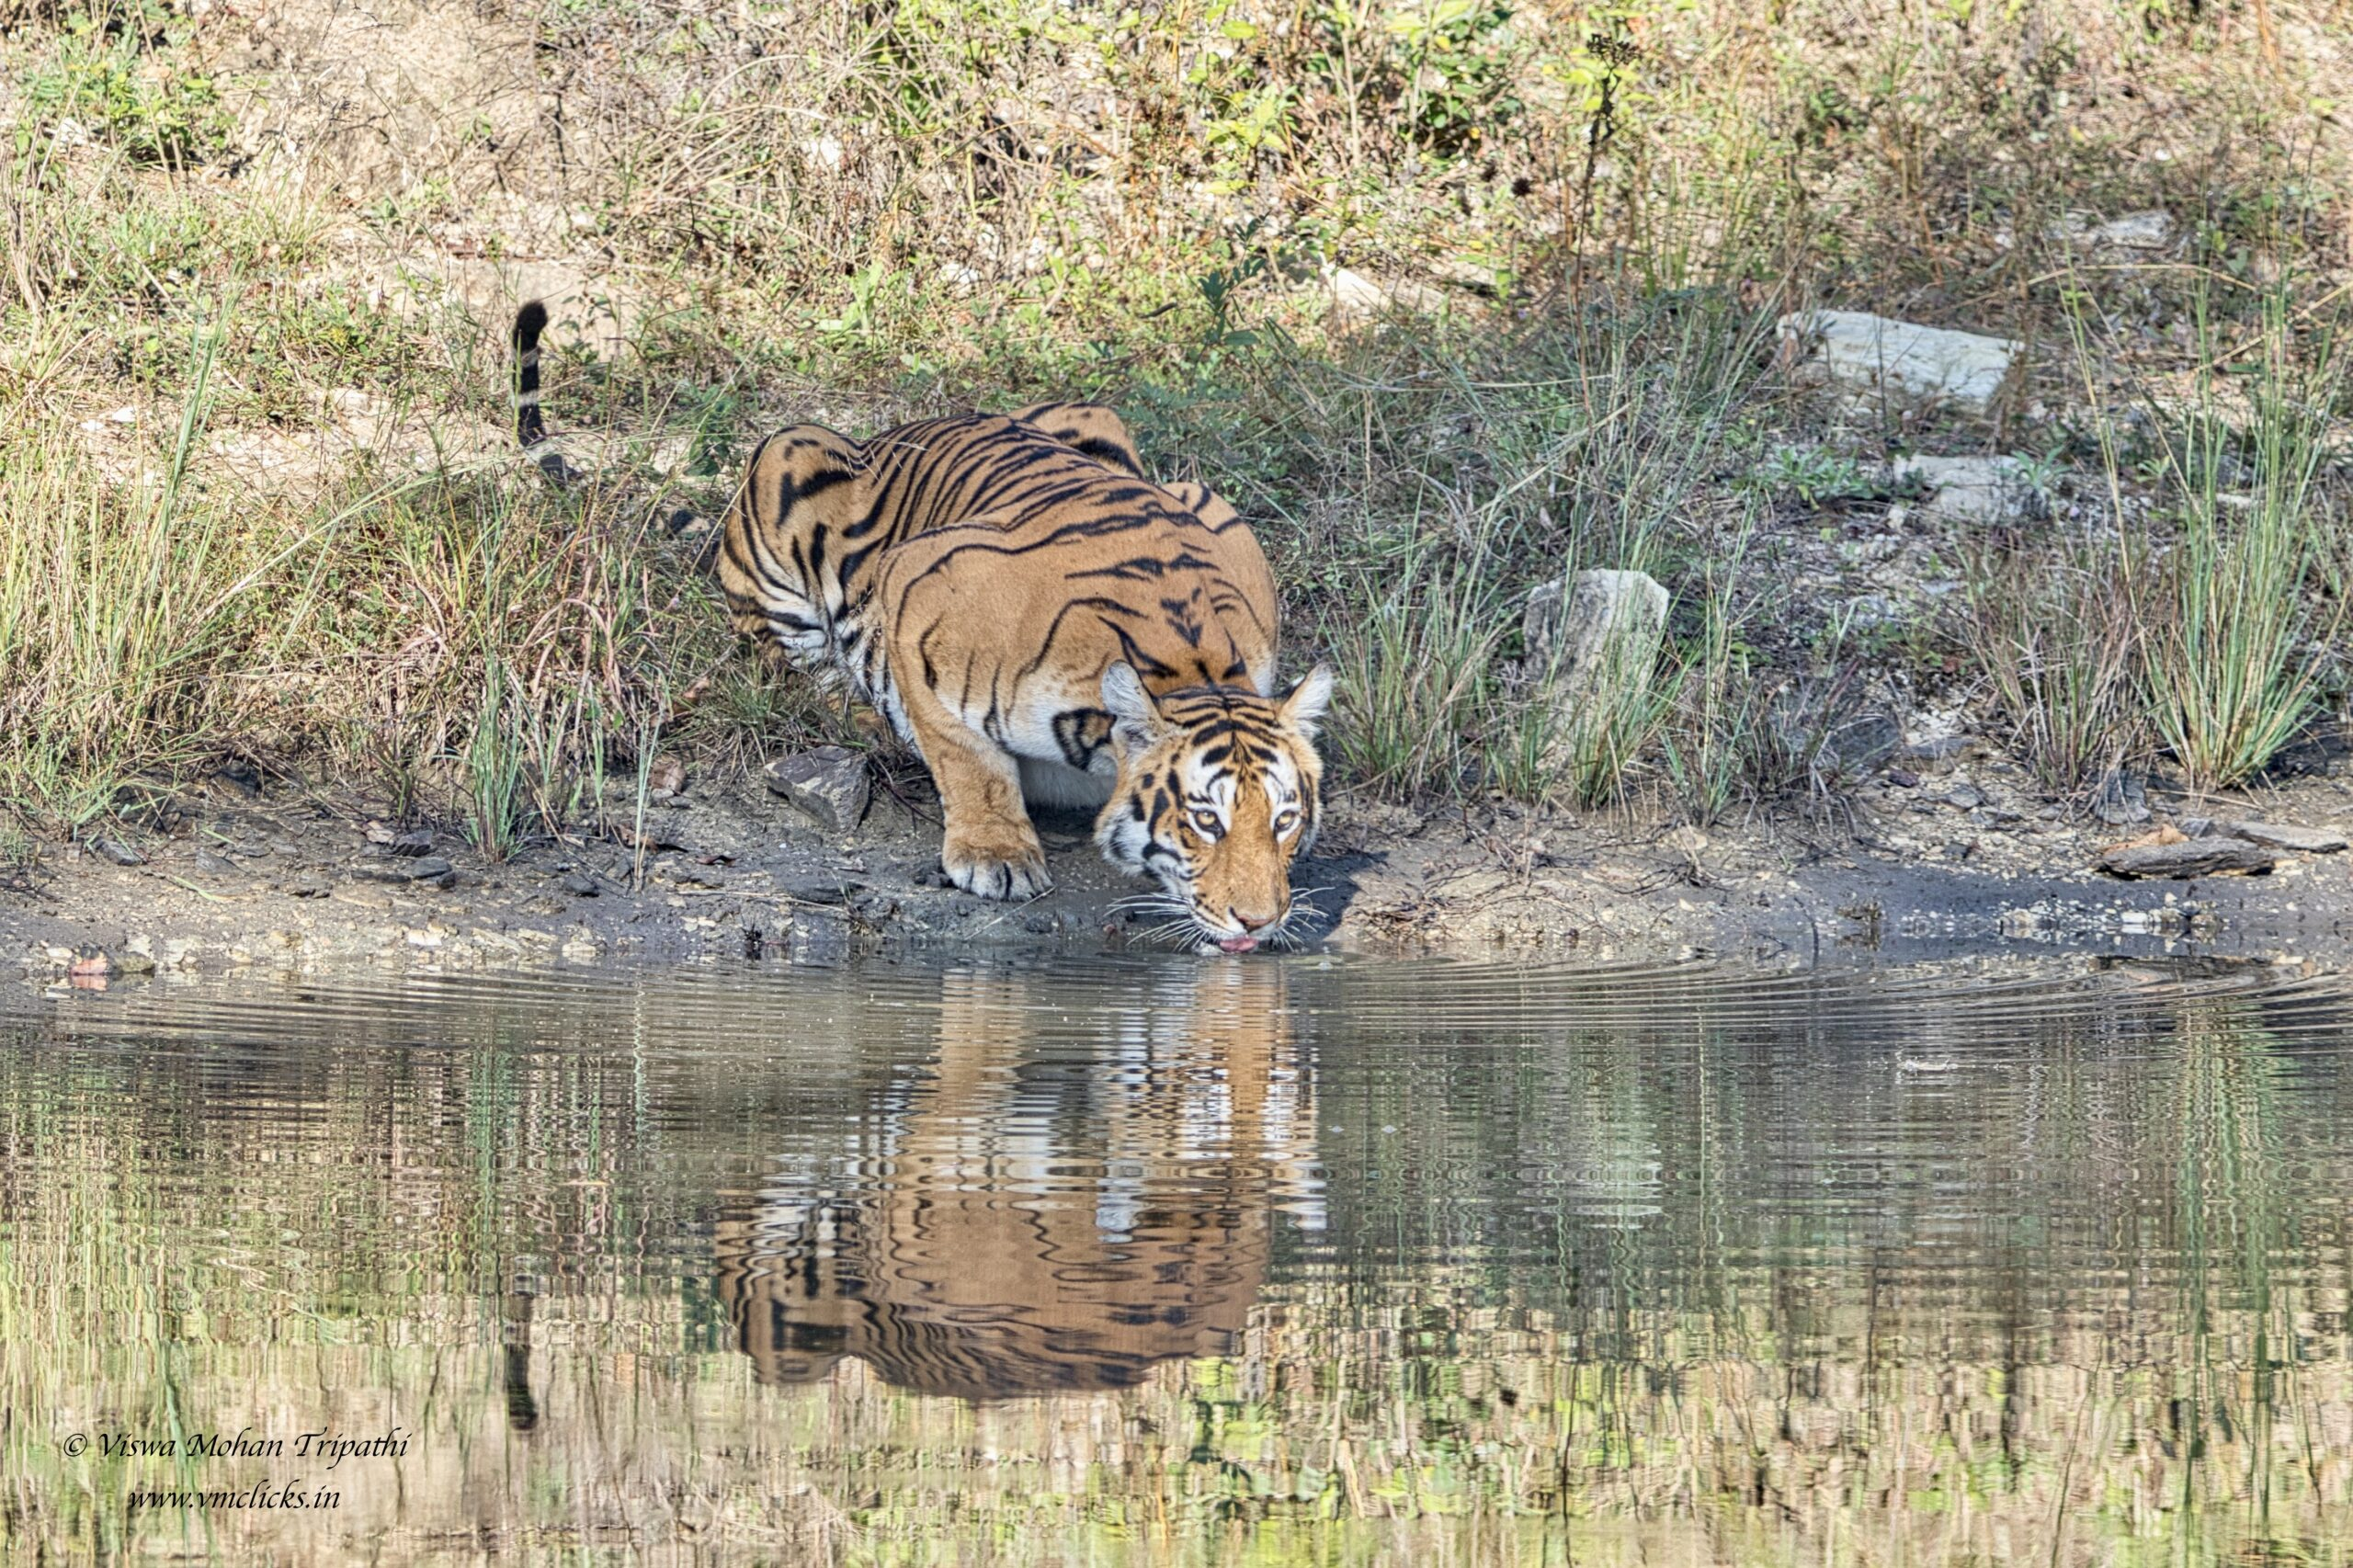 Tiger quenching thirst